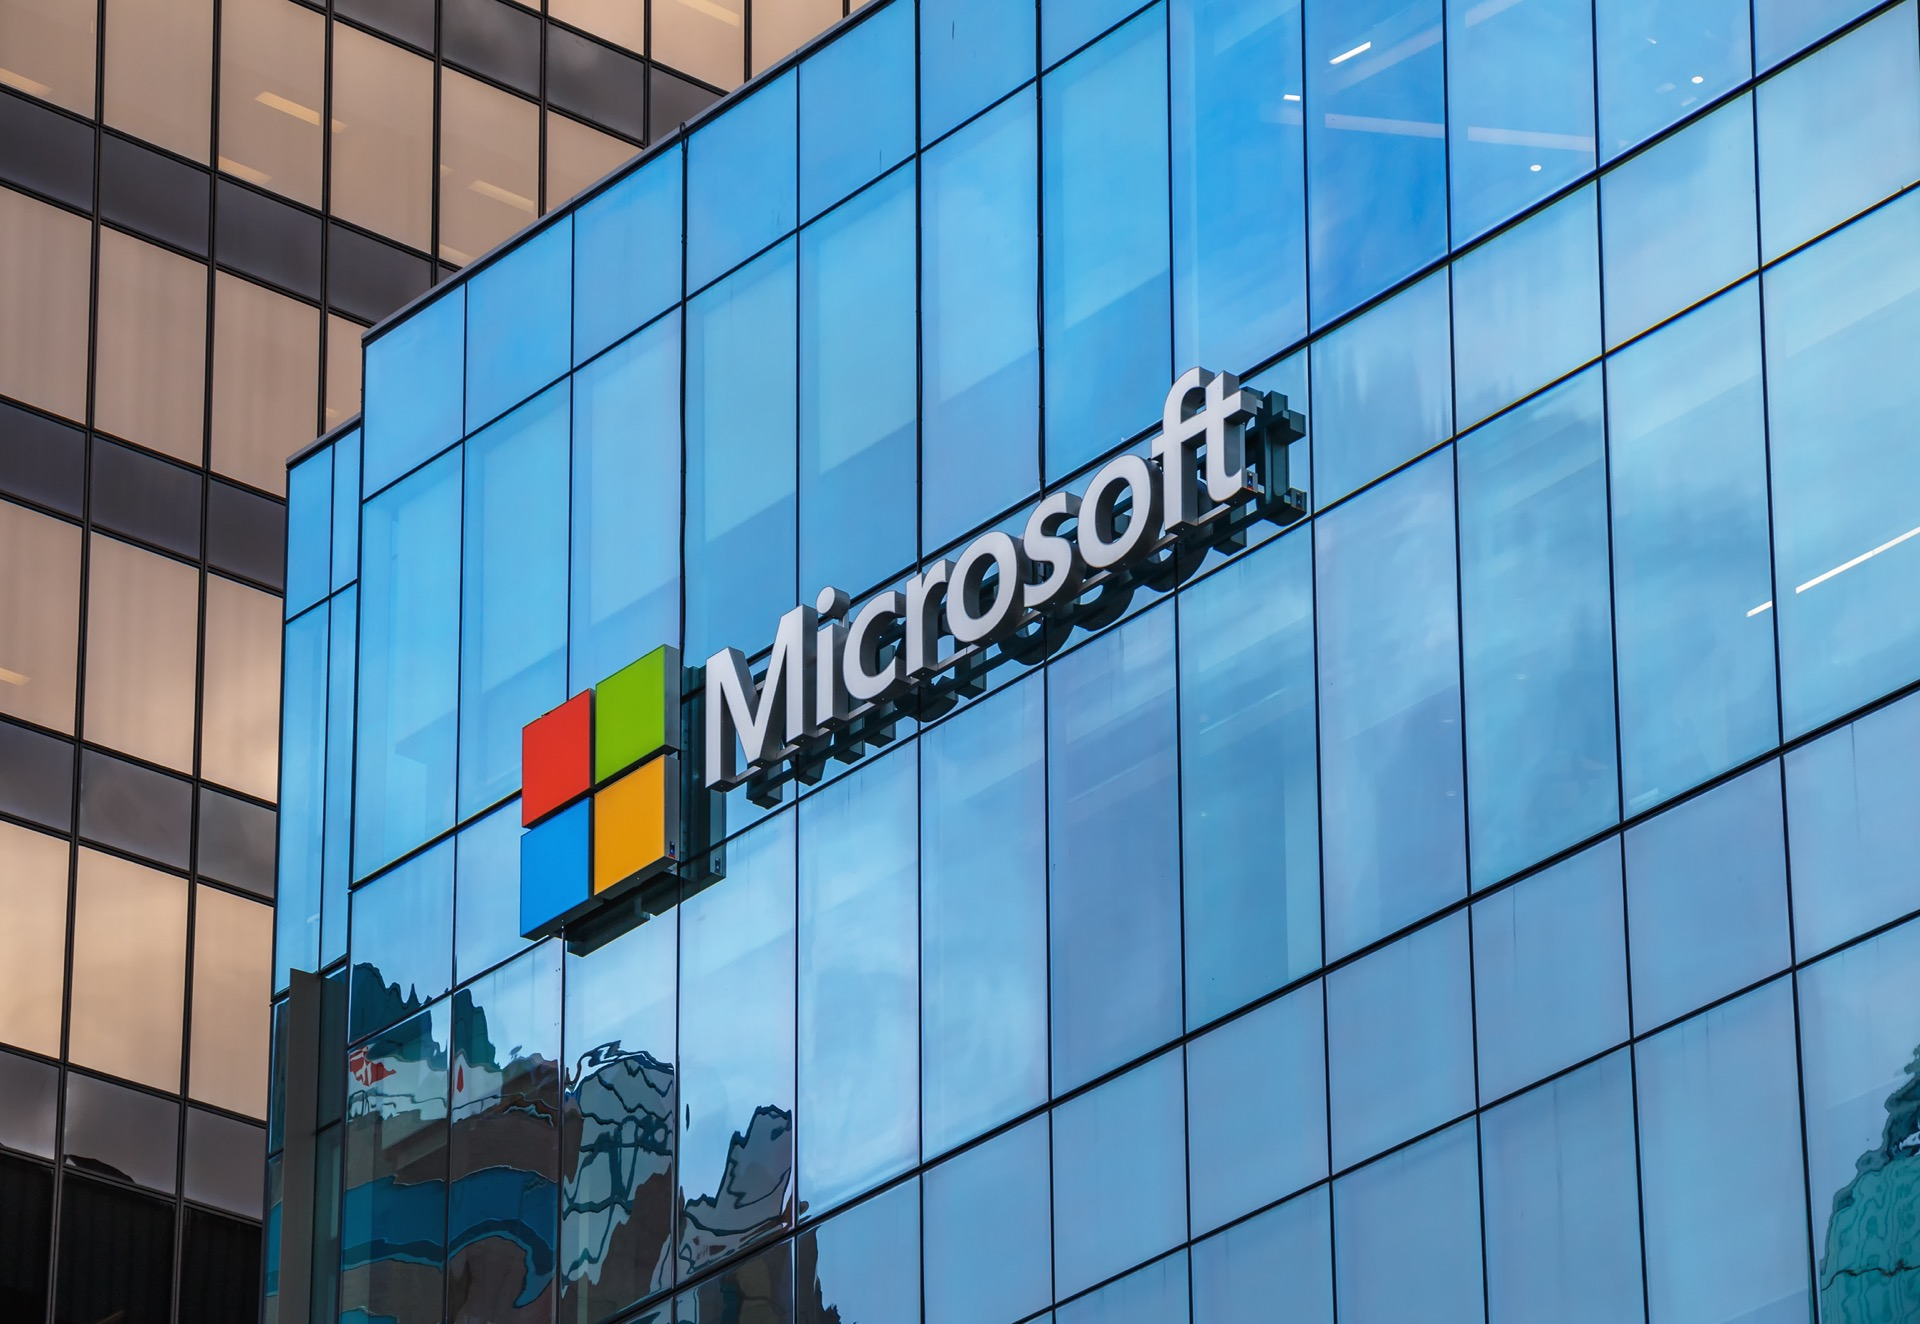 Traders fearing the end of the Covid tech boom spoil Microsoft's party